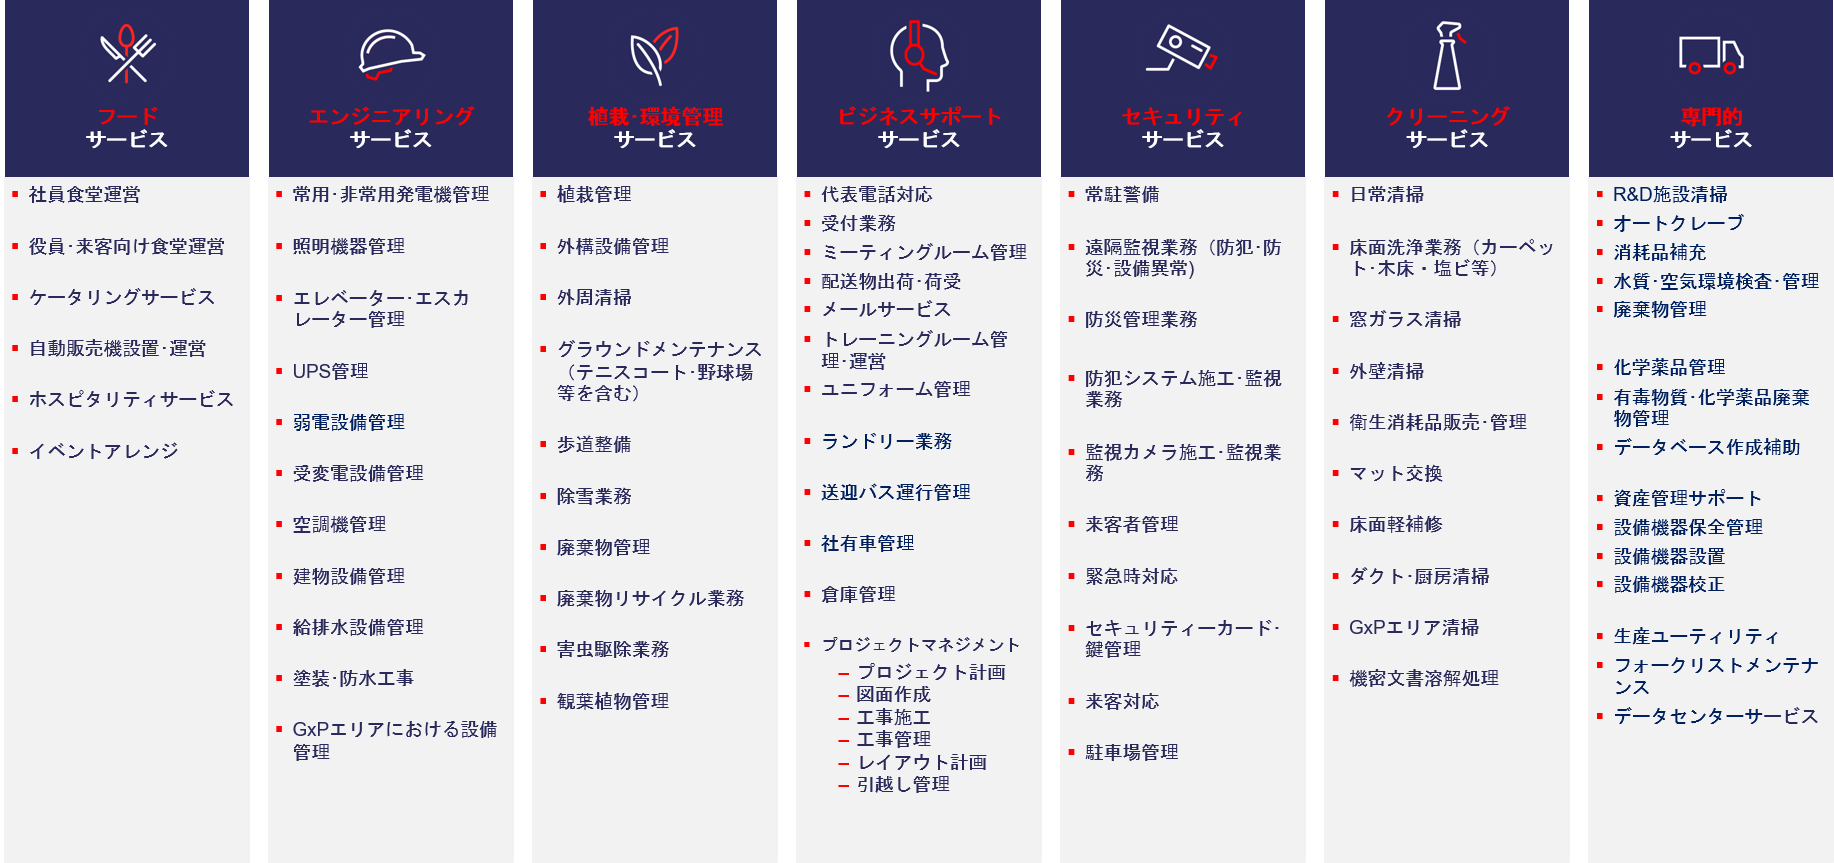 GSS18_IFM_Services_JP_001.png